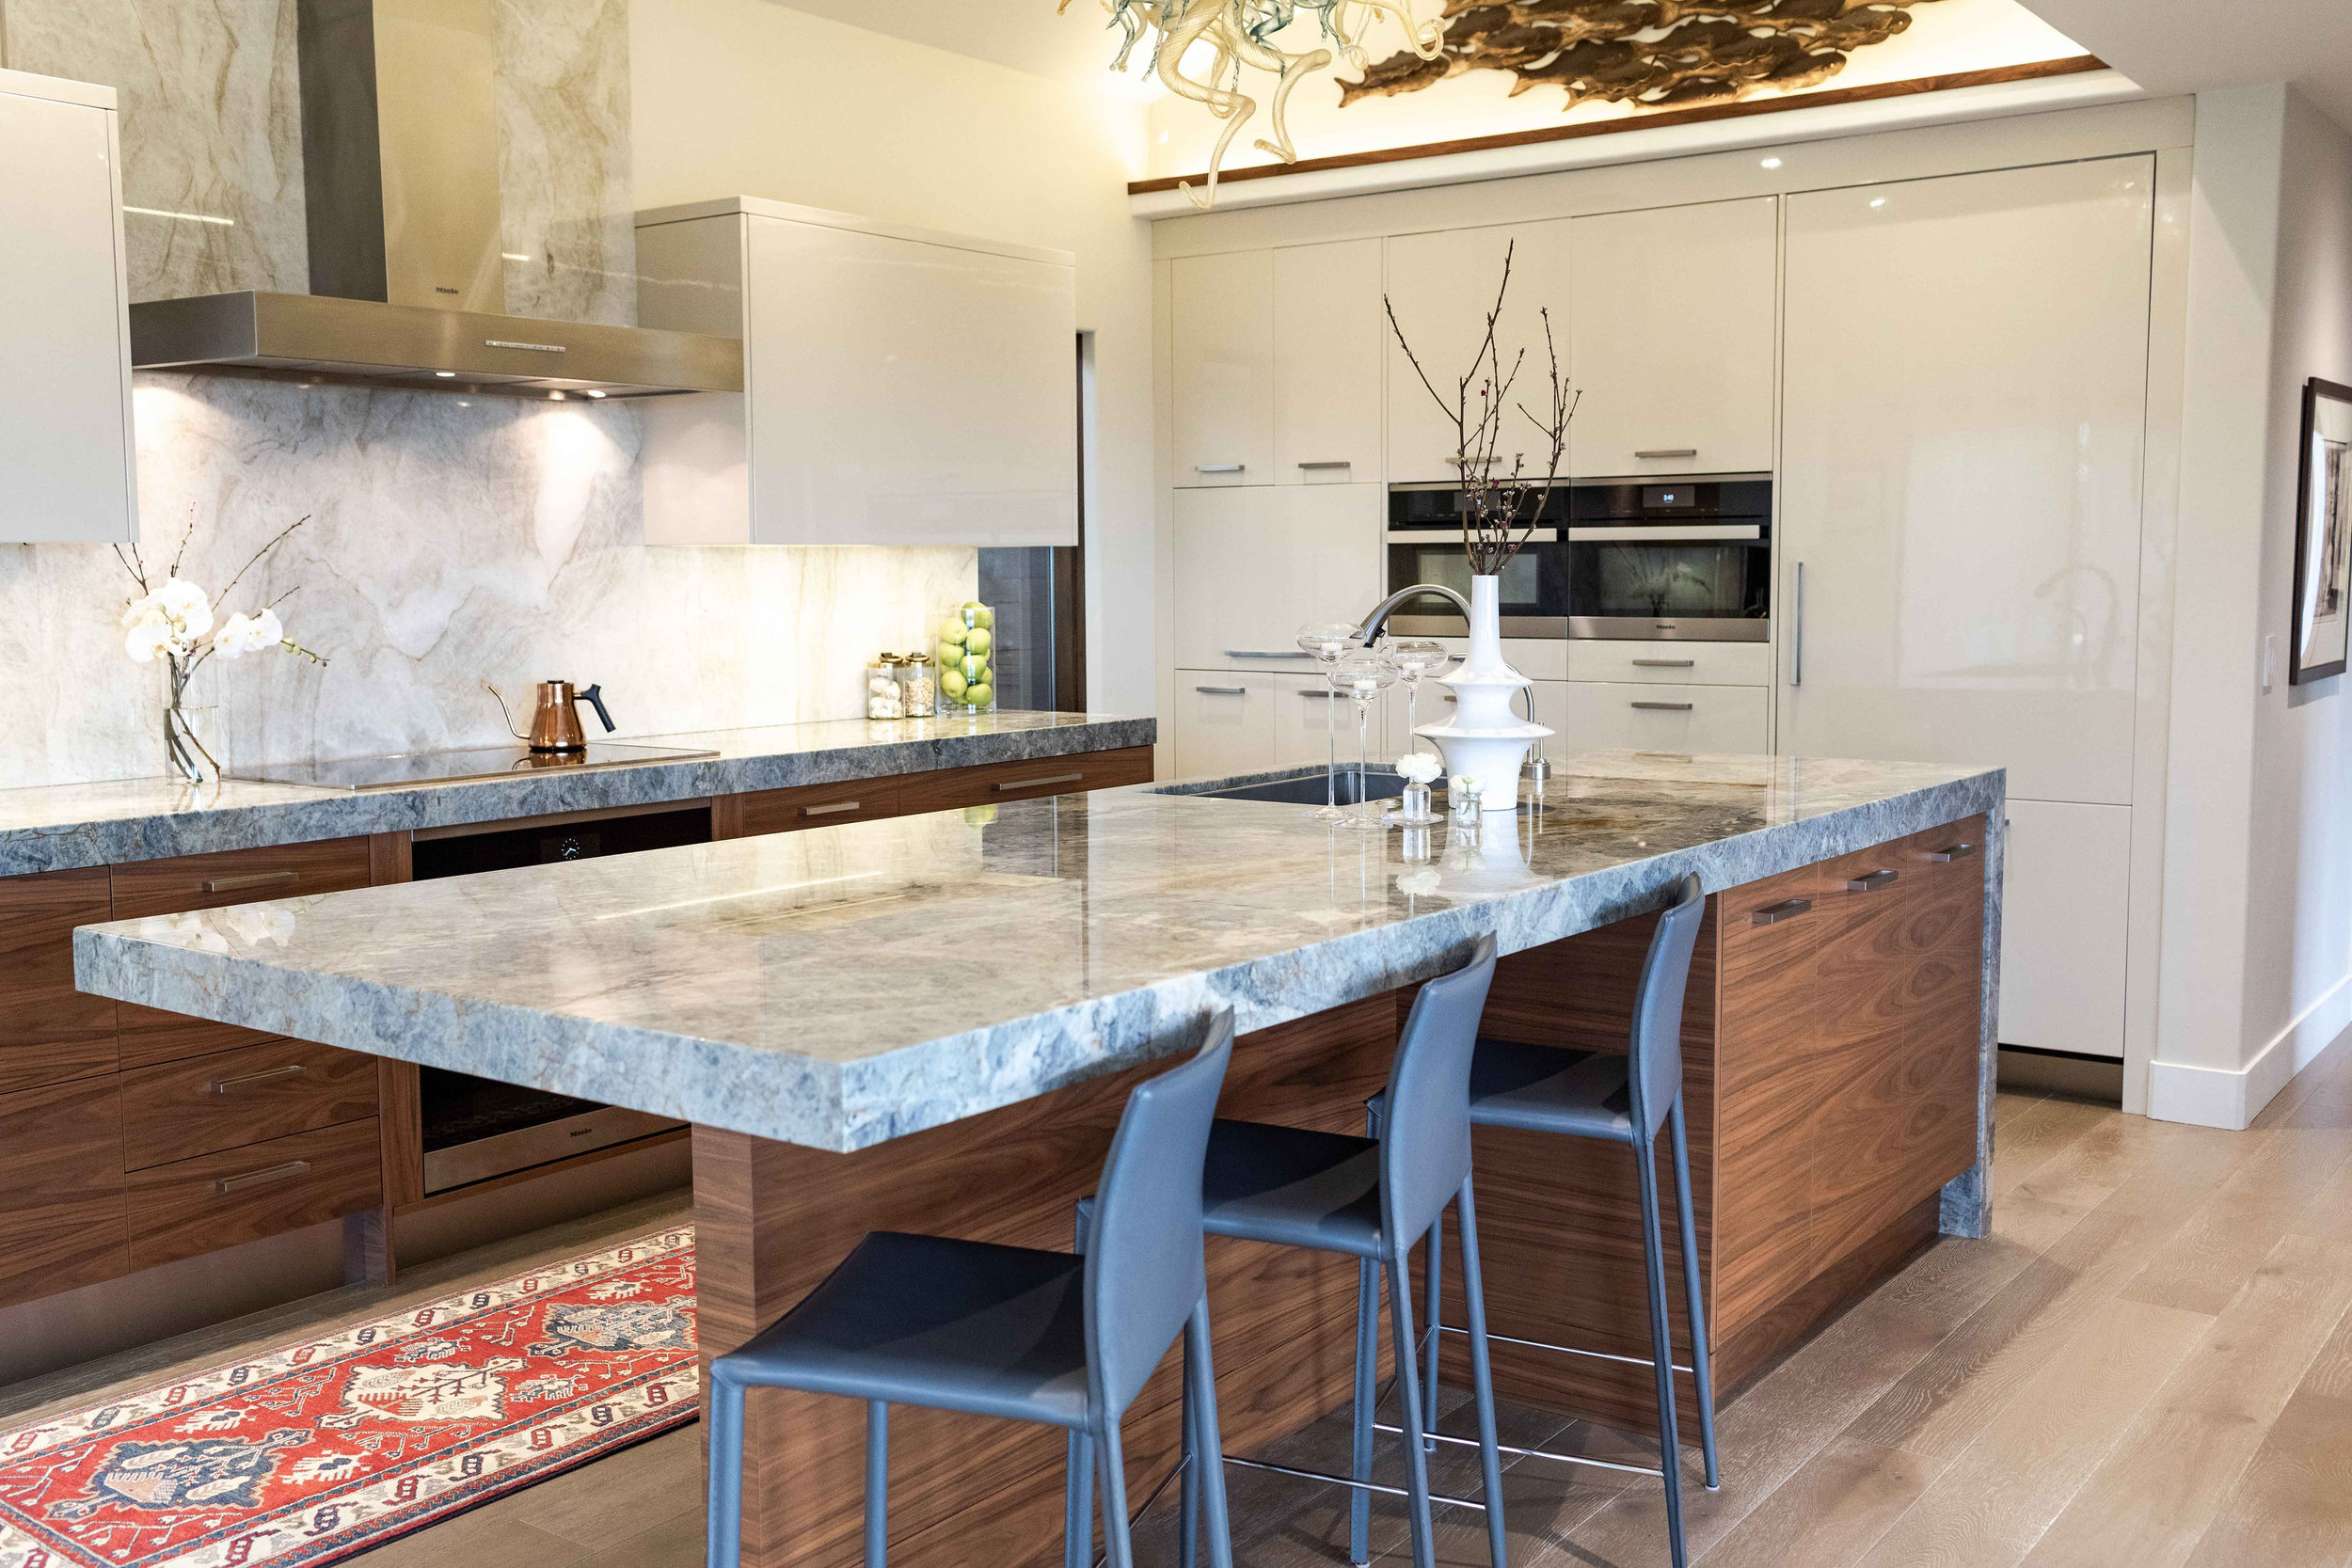 Granite is a dynamic stone that can add interest to your space.